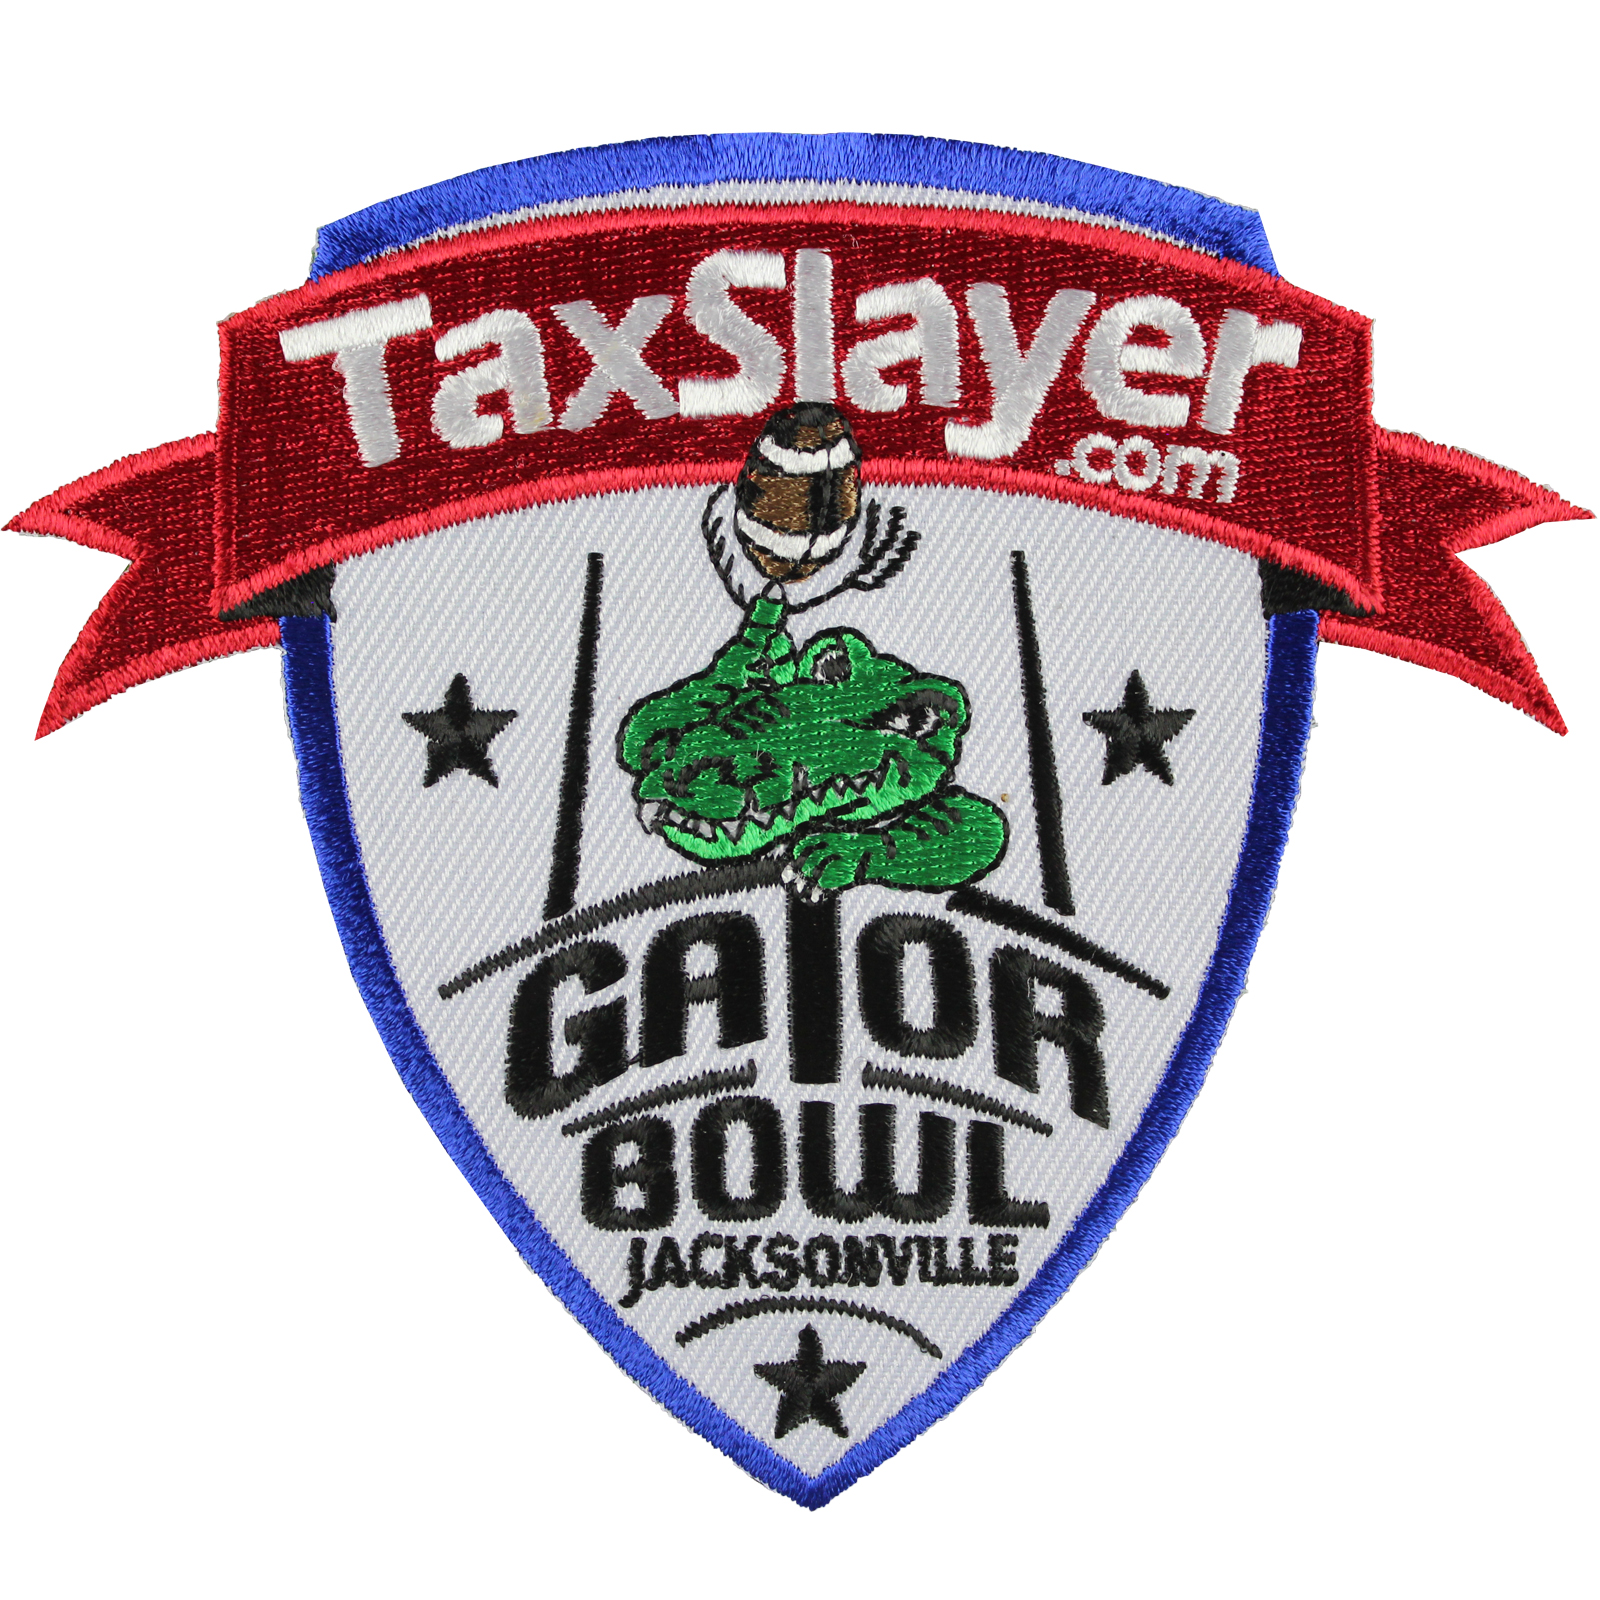 Tax Slayer.com Gator Bowl Game Jersey Patch In Jacksonville (2014 Nebraska vs. Georgia)